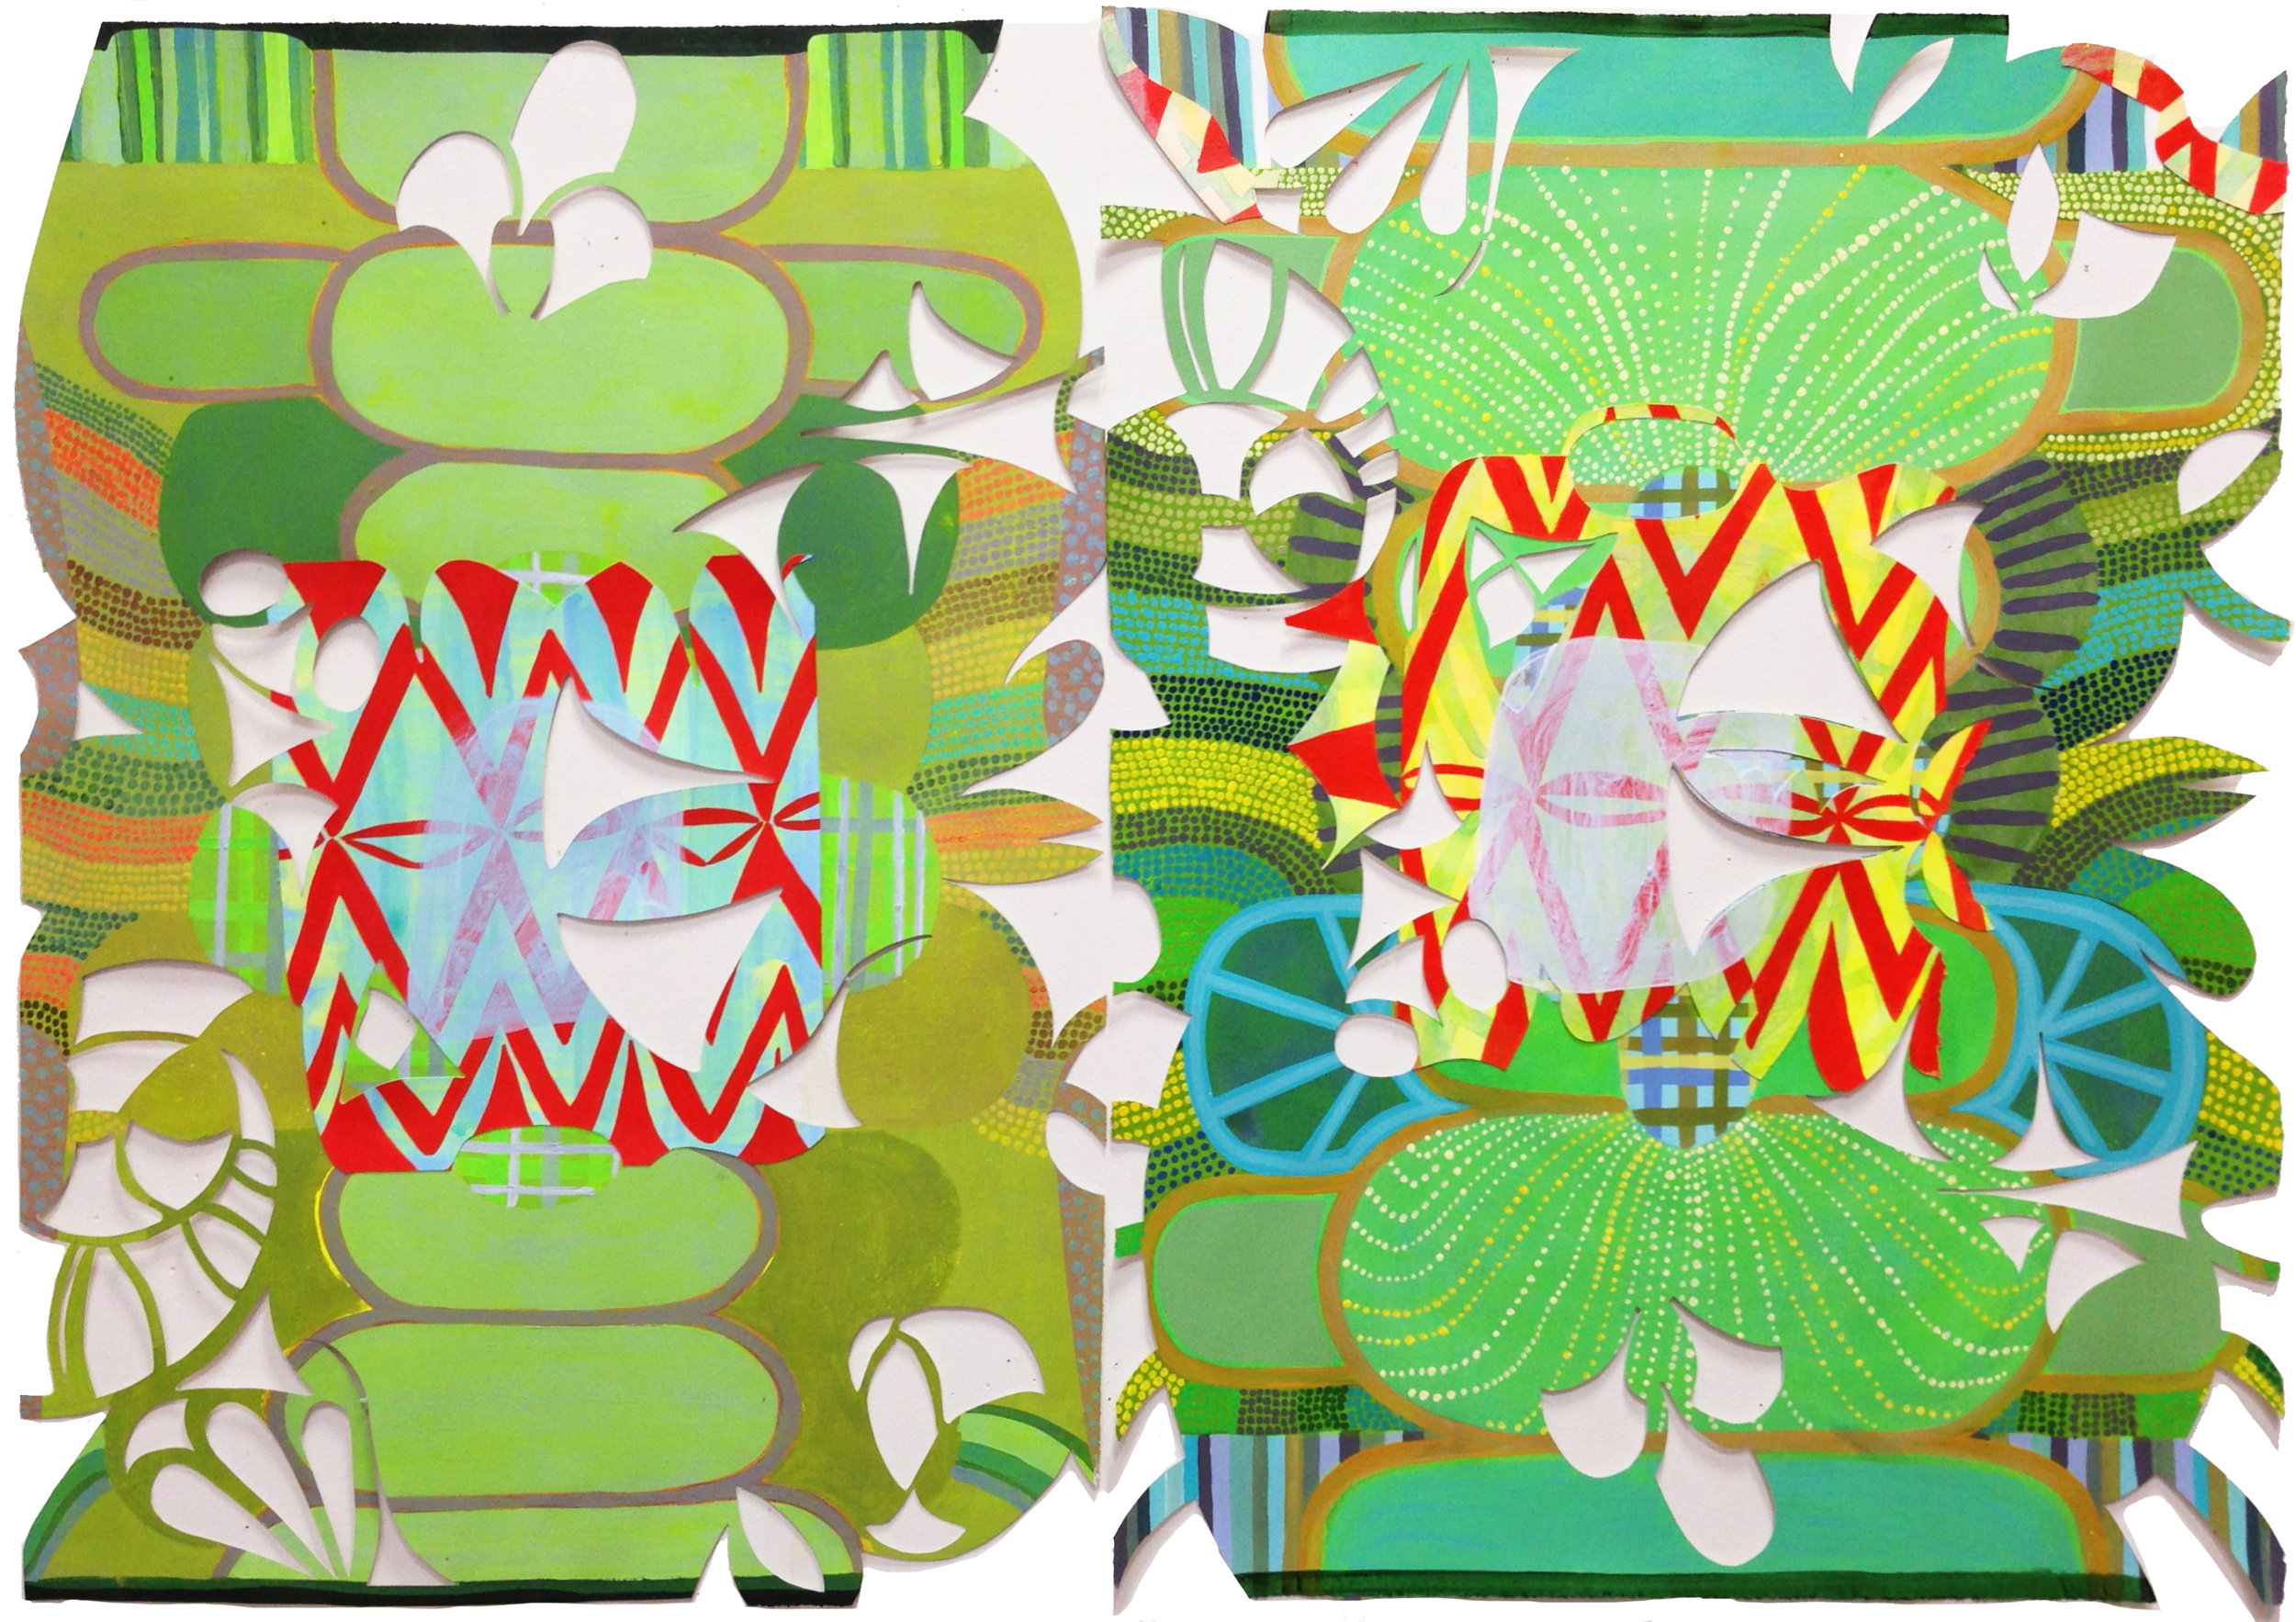 untitled 518, diptych